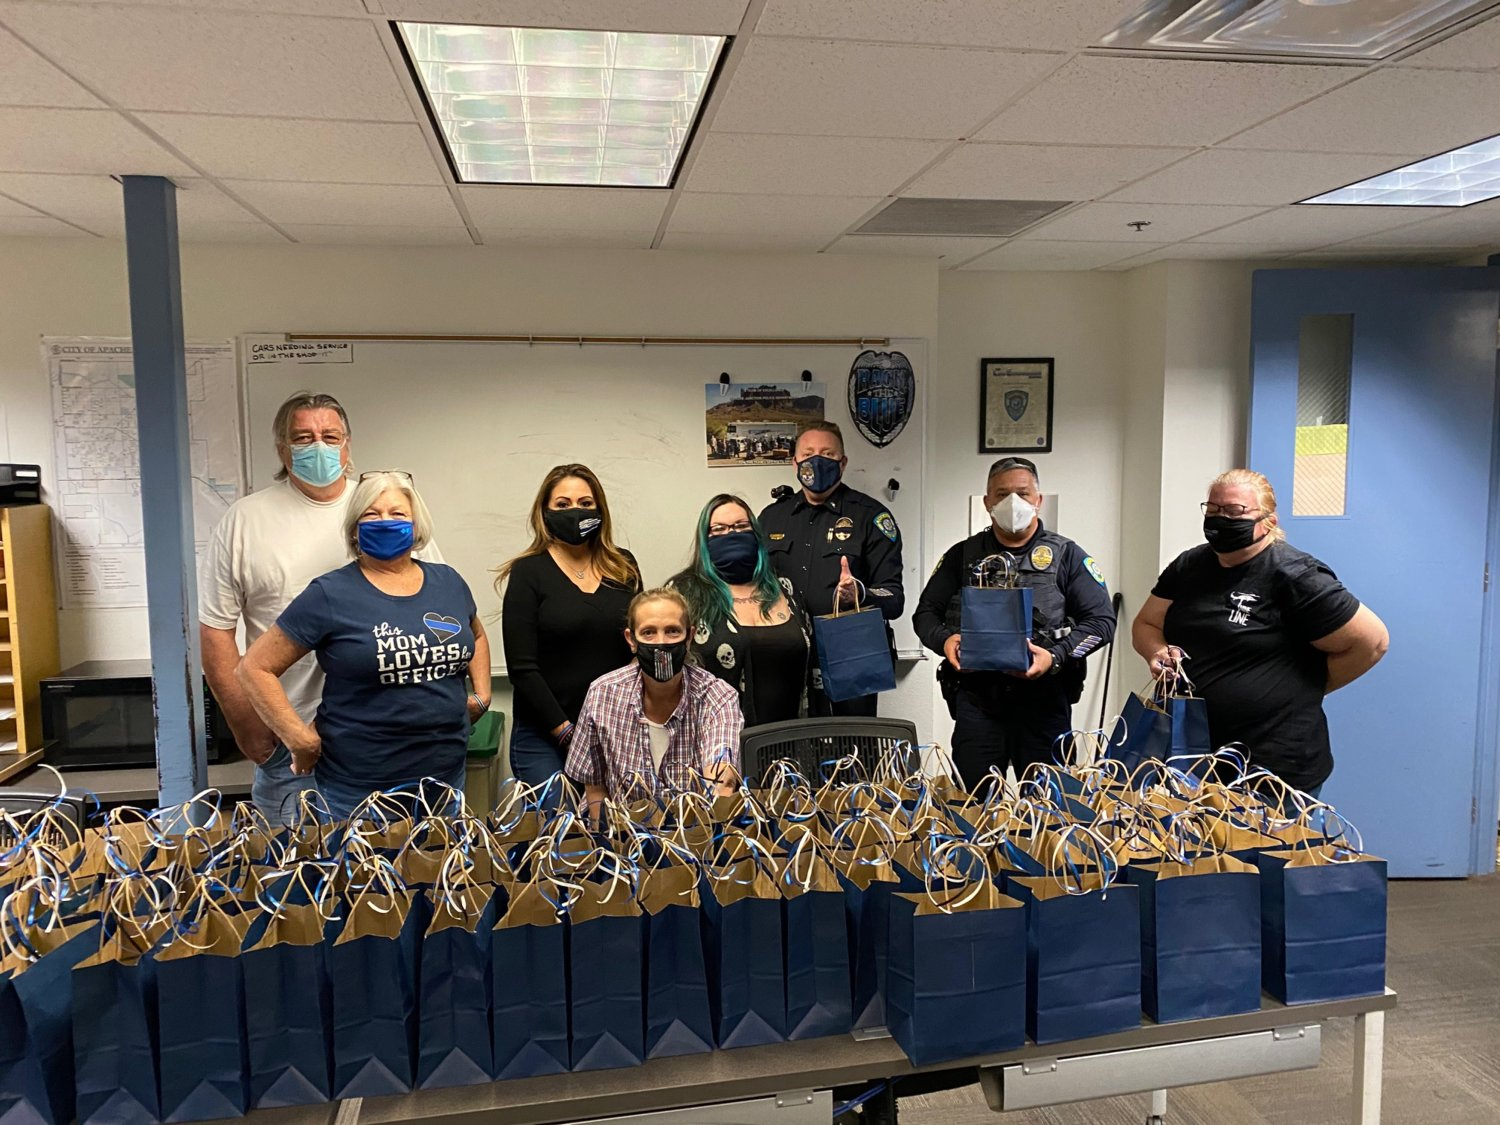 From left are Thank You AZ Blue members Roy Mills, 65; Sunny Mills, 66; Lucinda Anderson, 47; Mia Paris, 50; Margarita Gordon, 31; and Kimberly Hofbauer, 59; with Apache Junction Police Department Lt. Thom Parker and Officer Keith Gabriel.